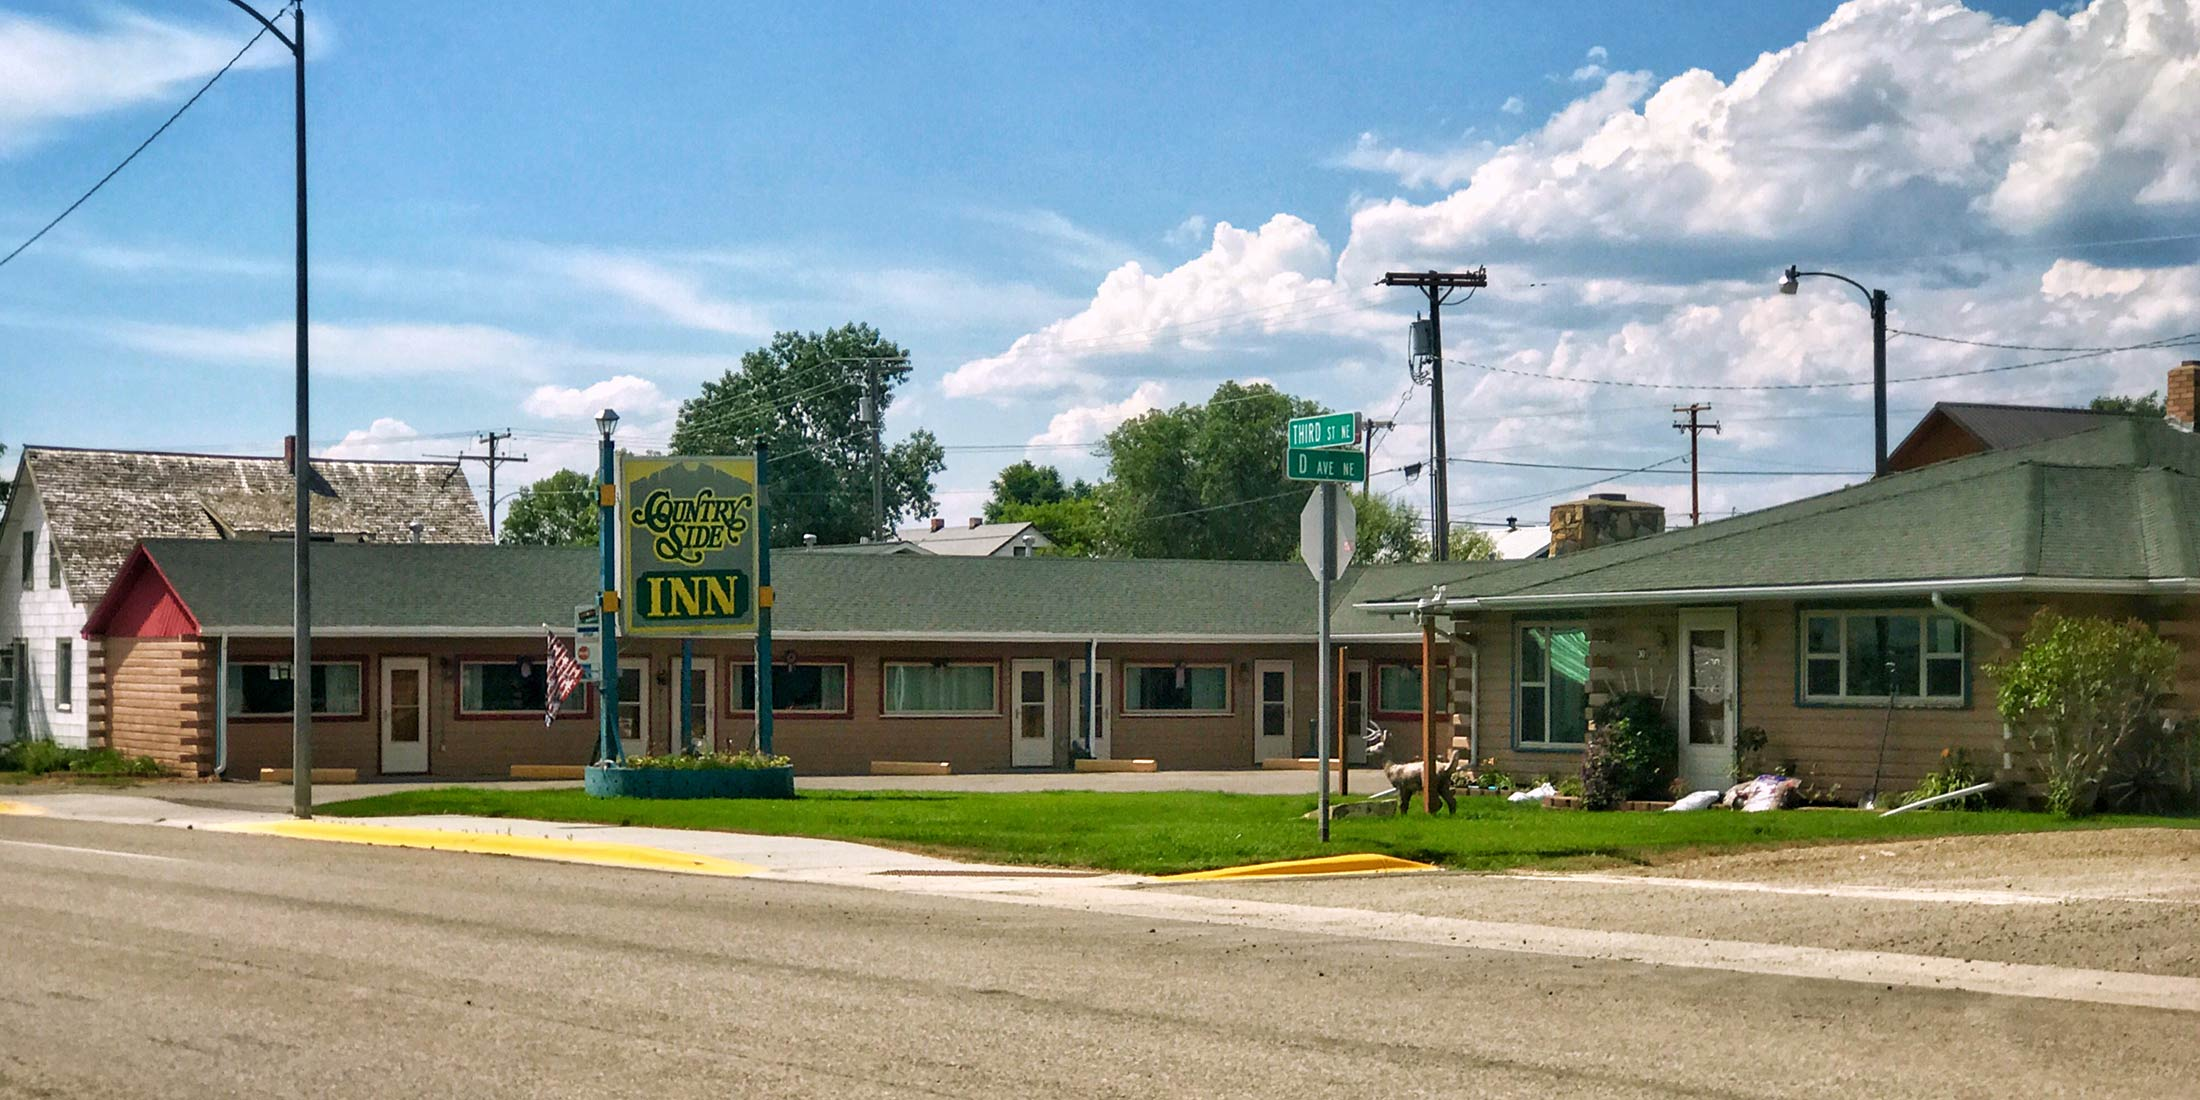 Located on 3rd Street North, Highway 12, in Harlowton, Montana - Wheatland County.